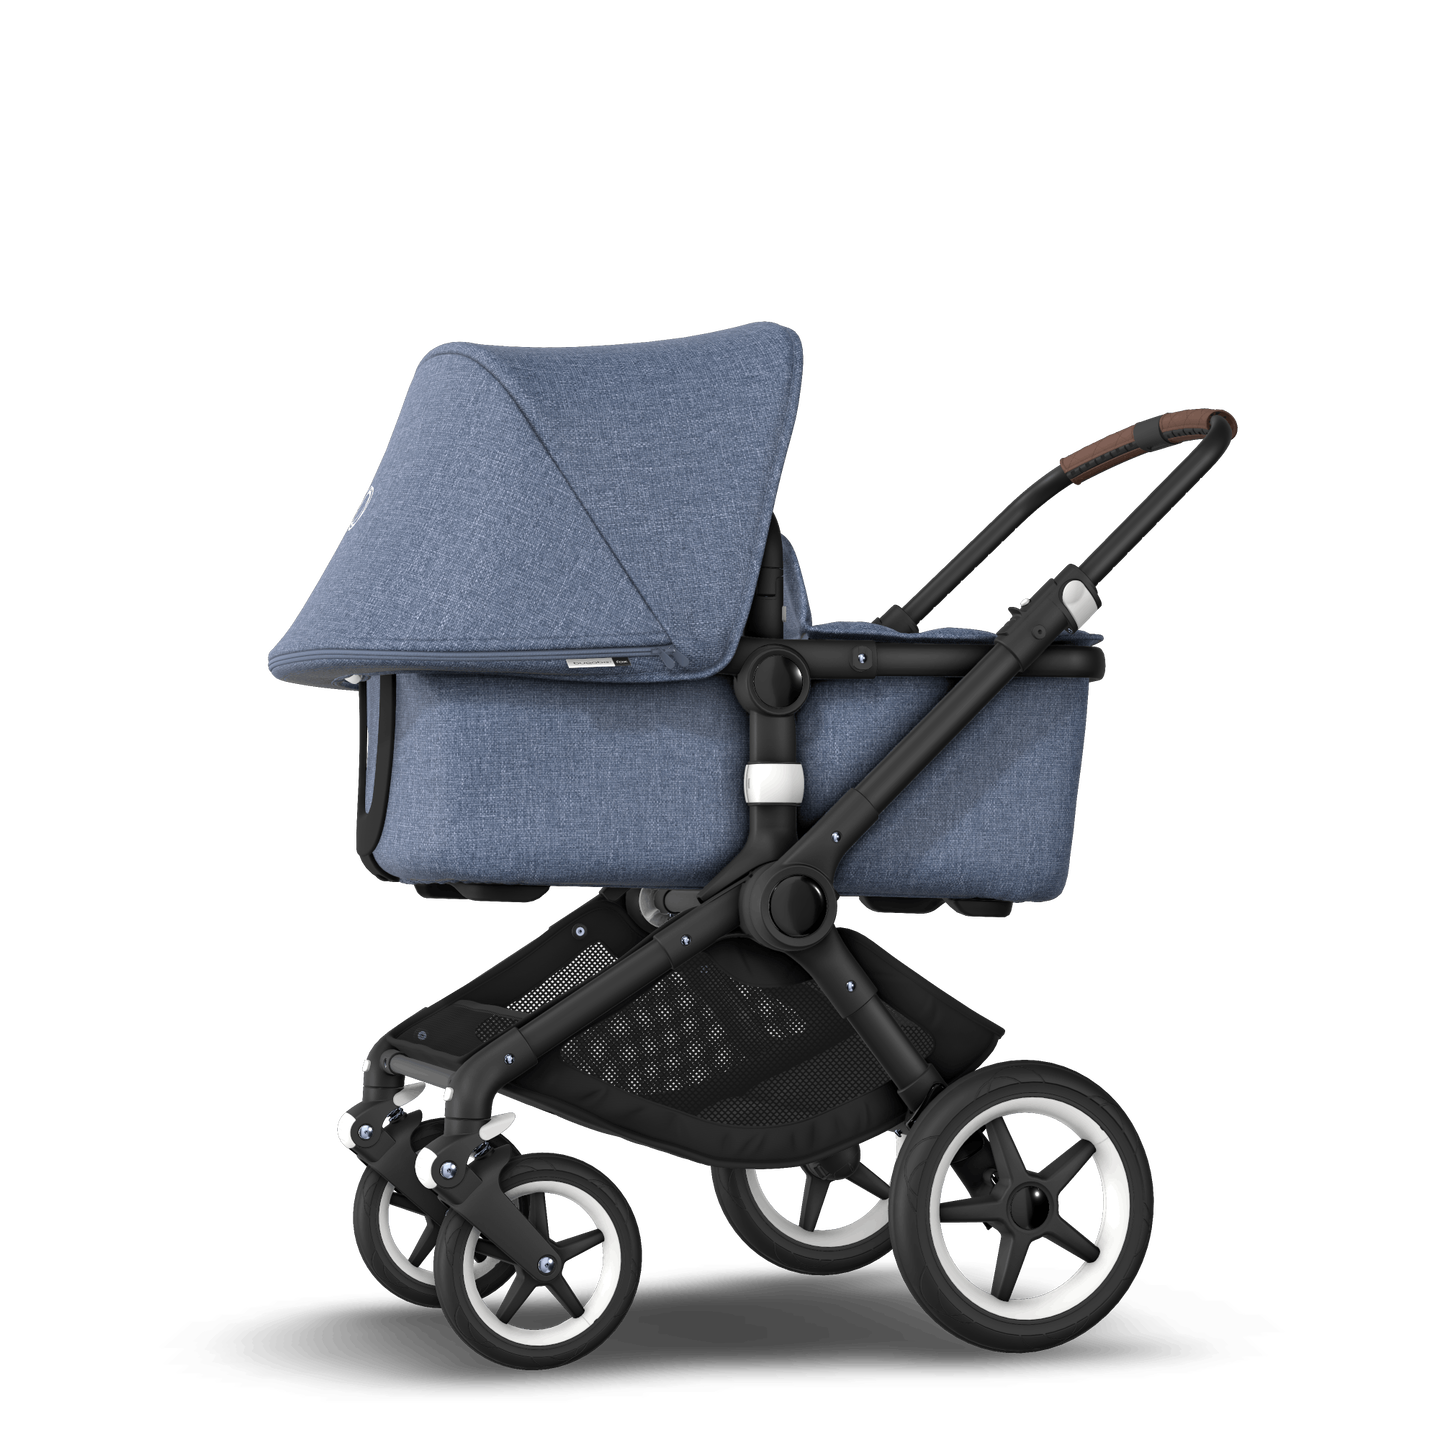 The perfect stroller for every parent